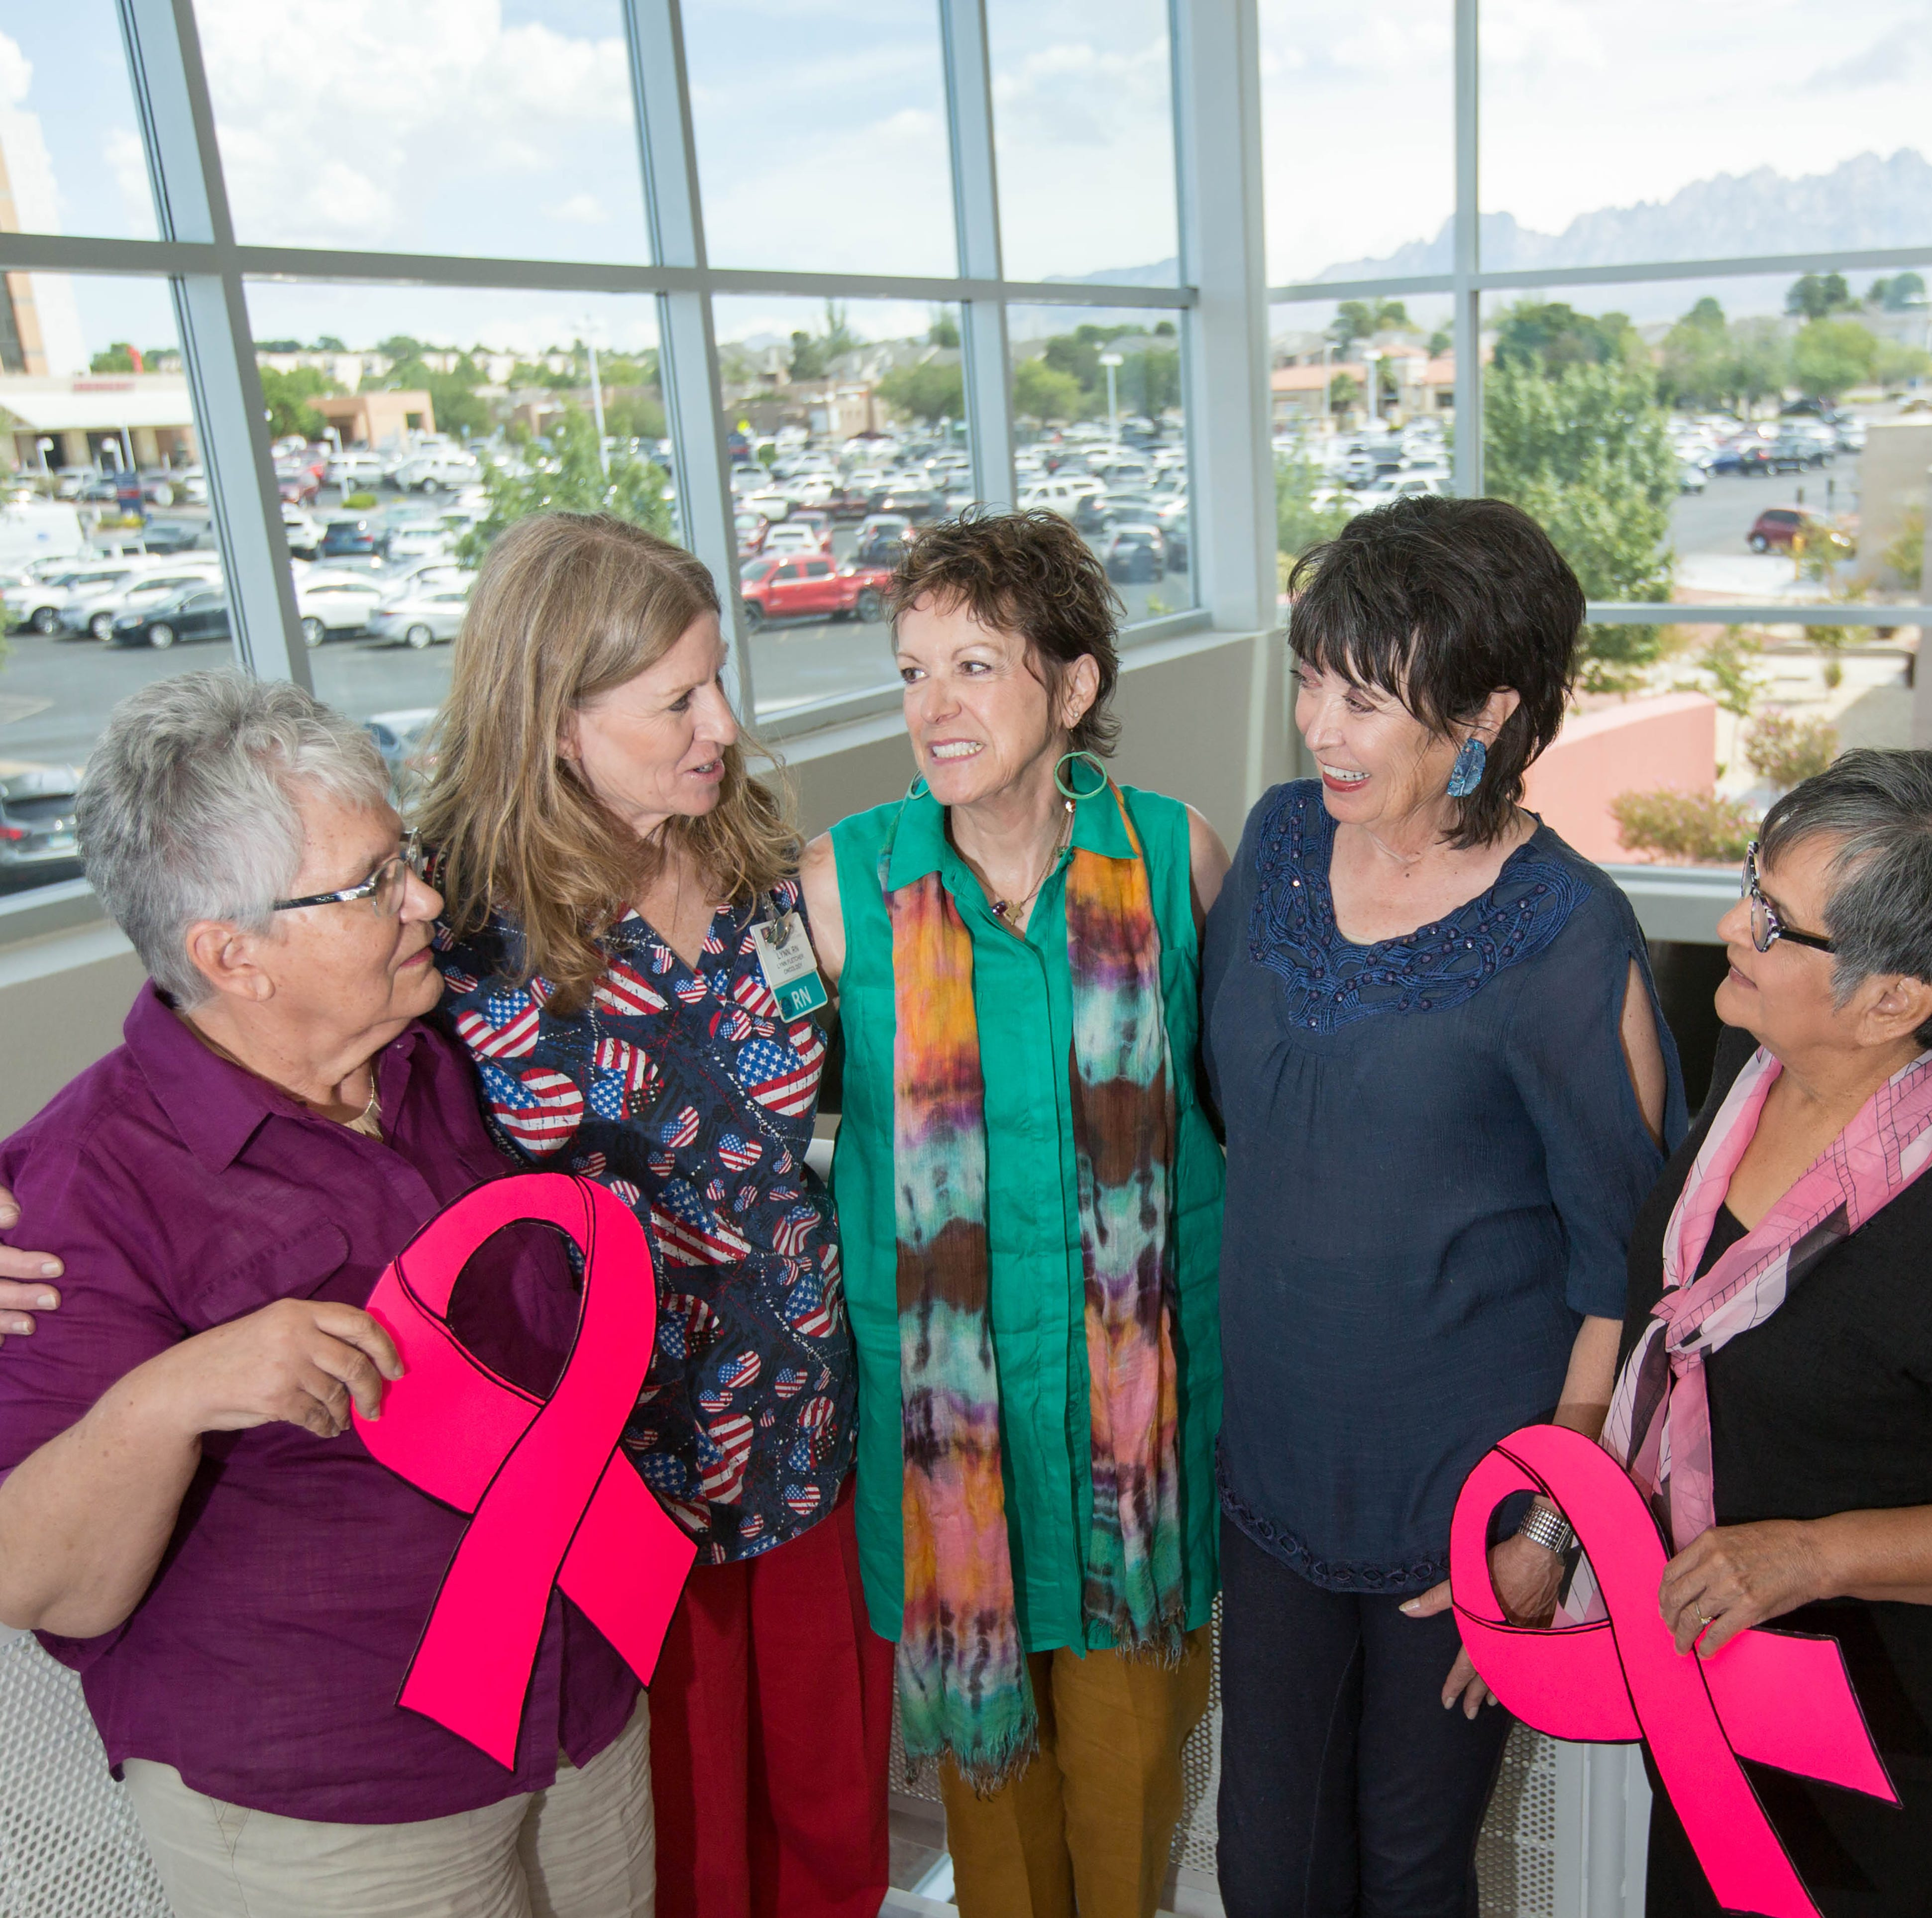 Life after diagnosis: Breast cancer treatment, support better by the day